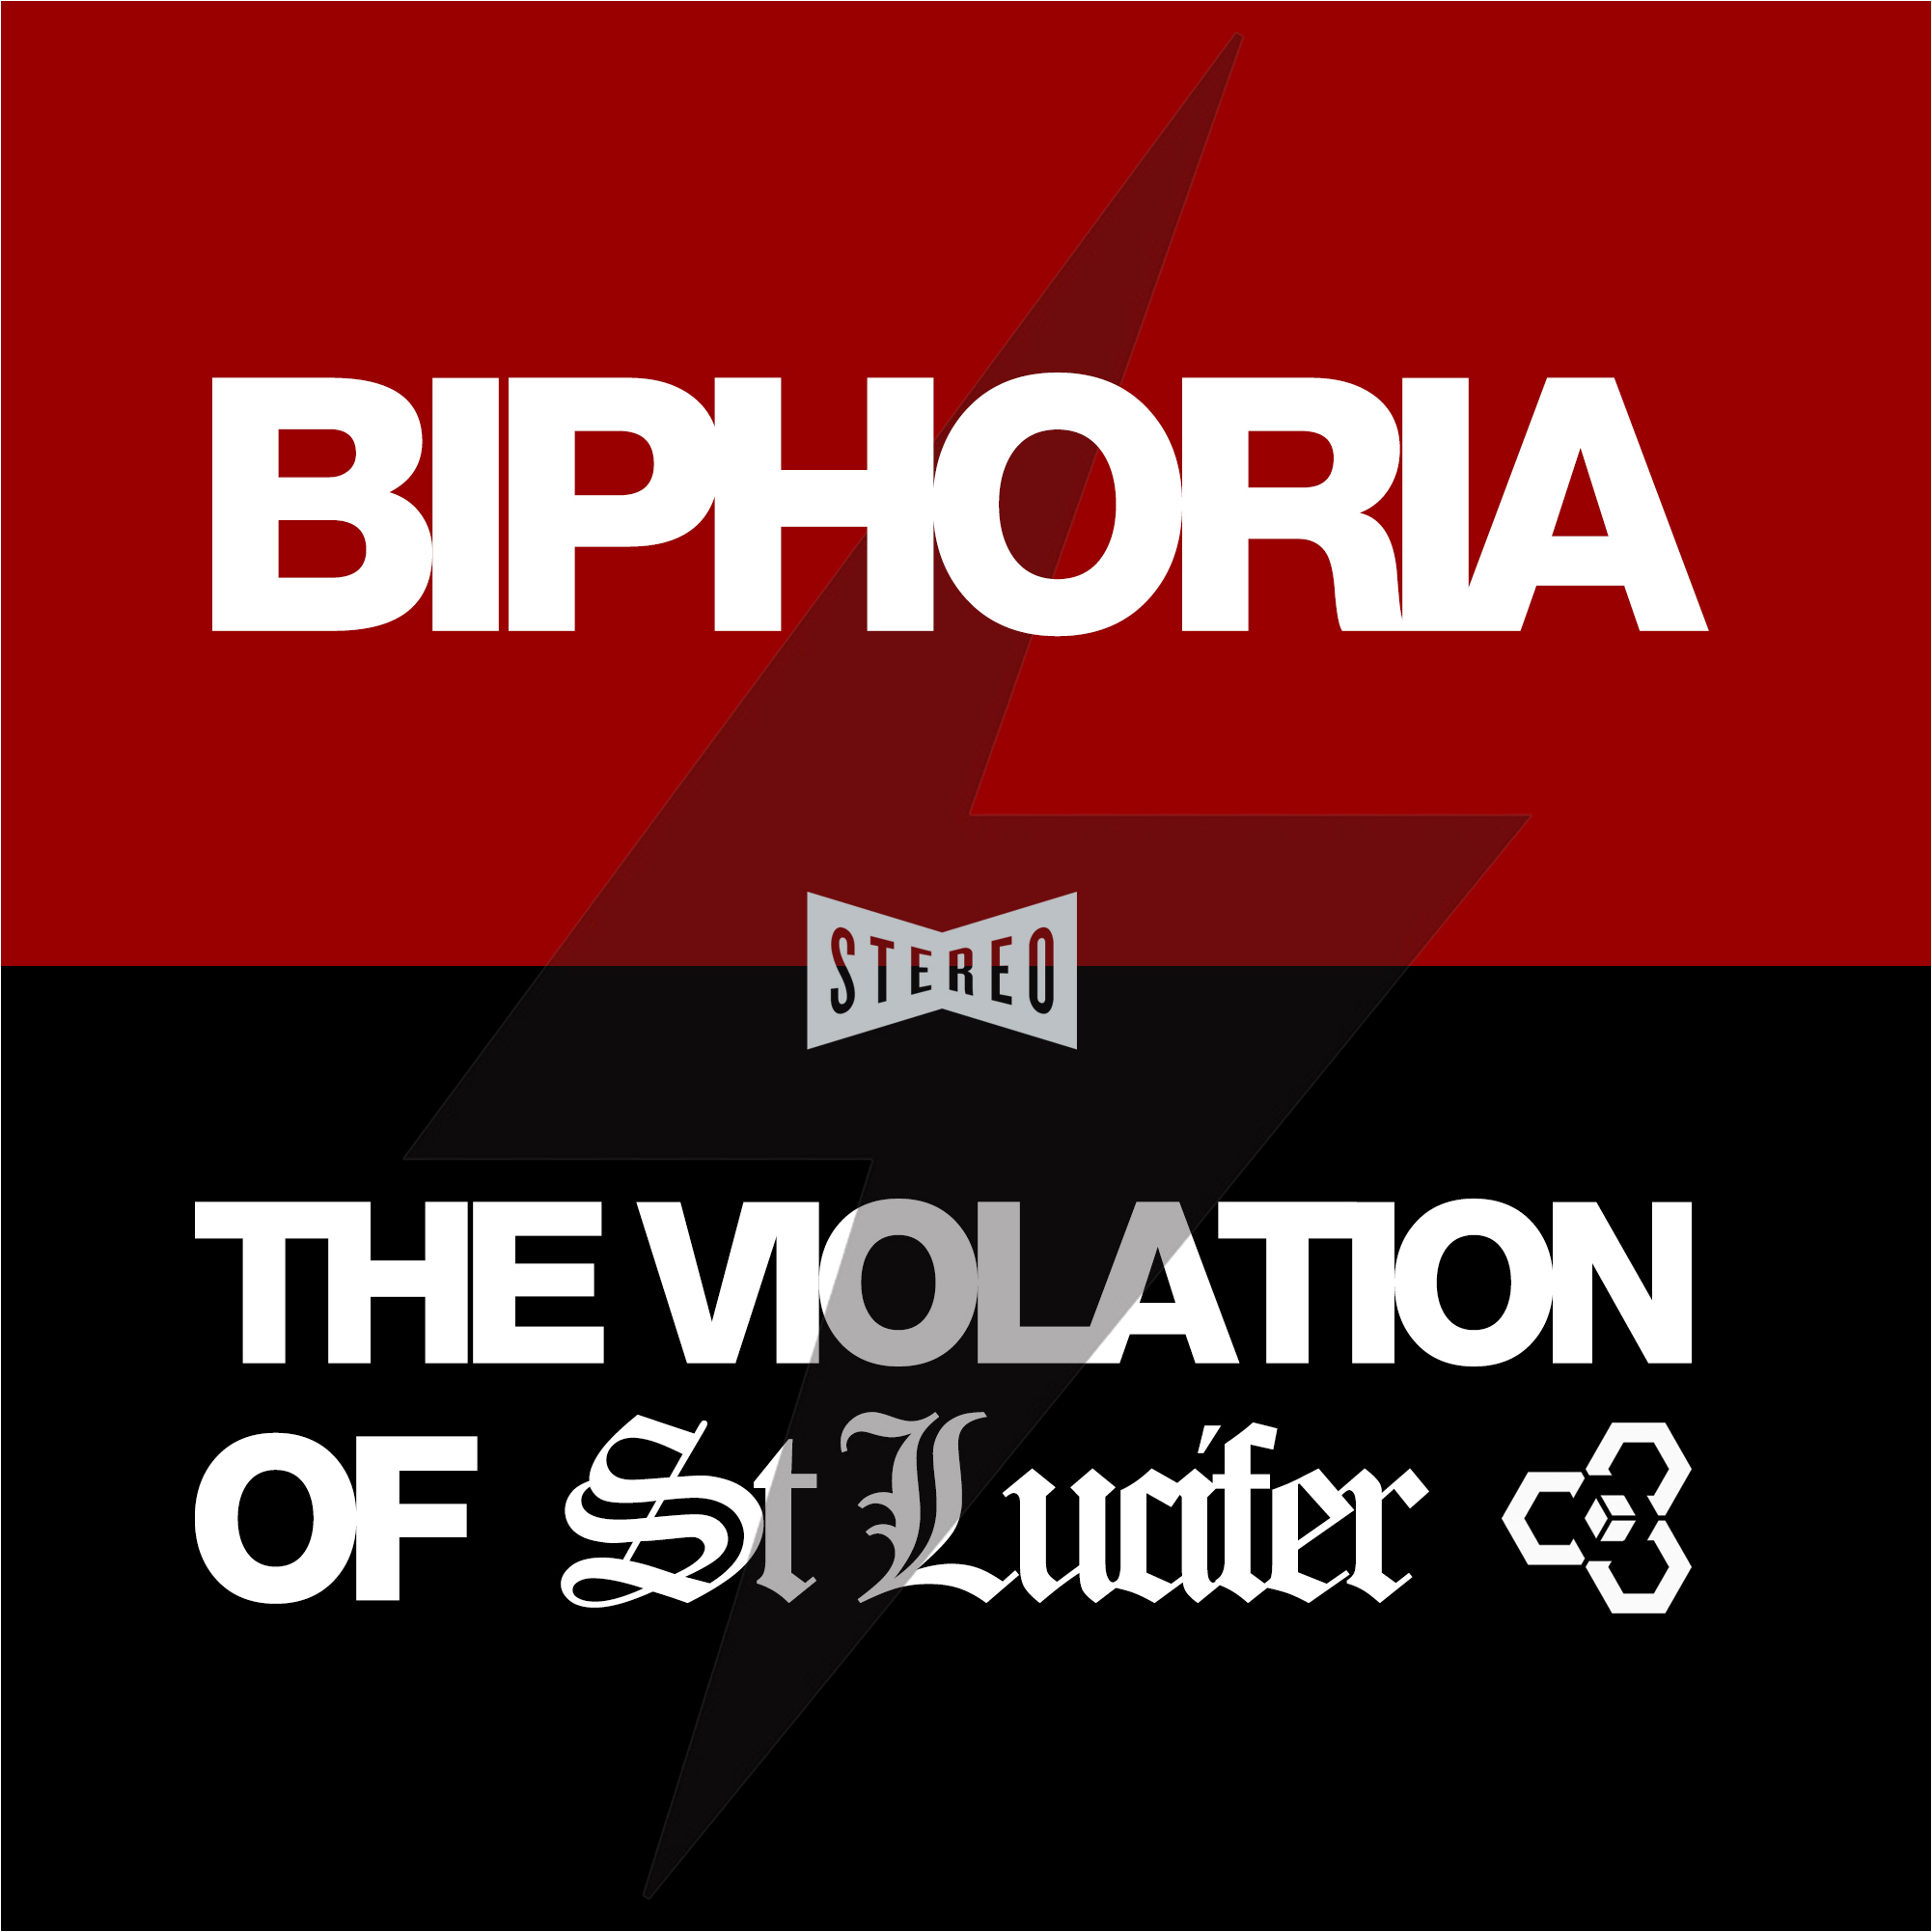 St Lucifer – Biphoria / The Violation Of St Lucifer